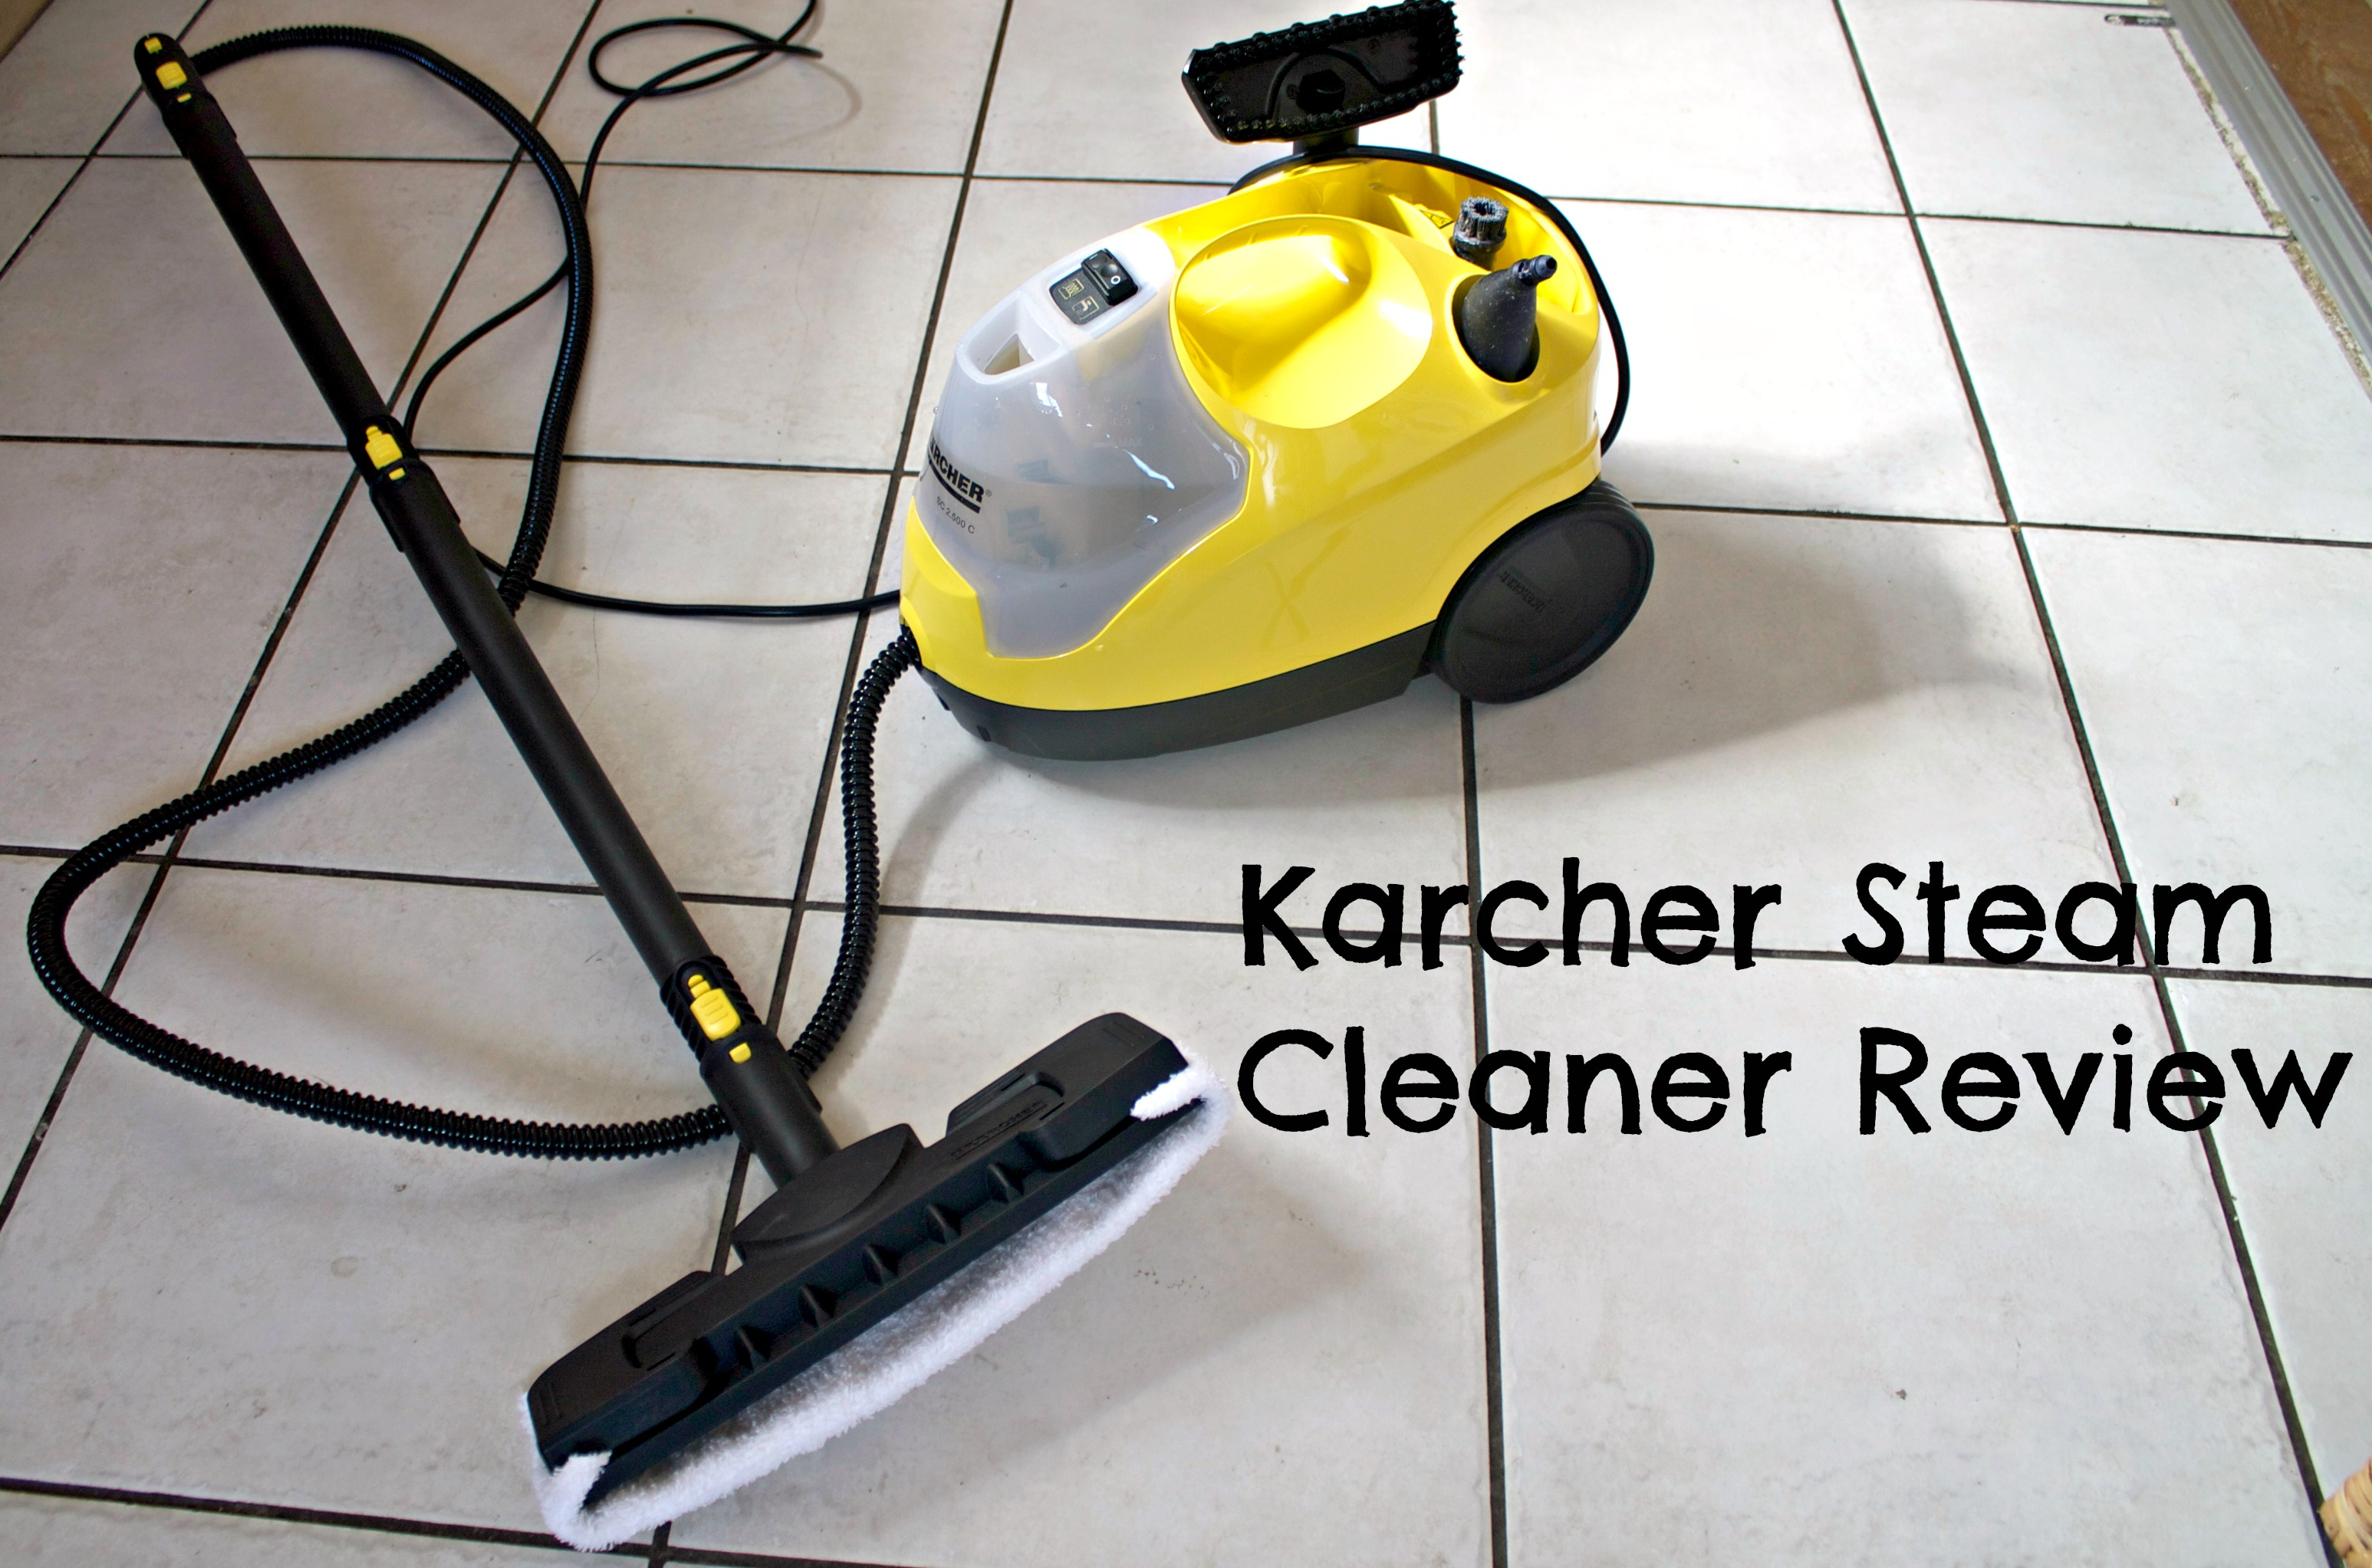 floor cleaners review karcher steam cleaner